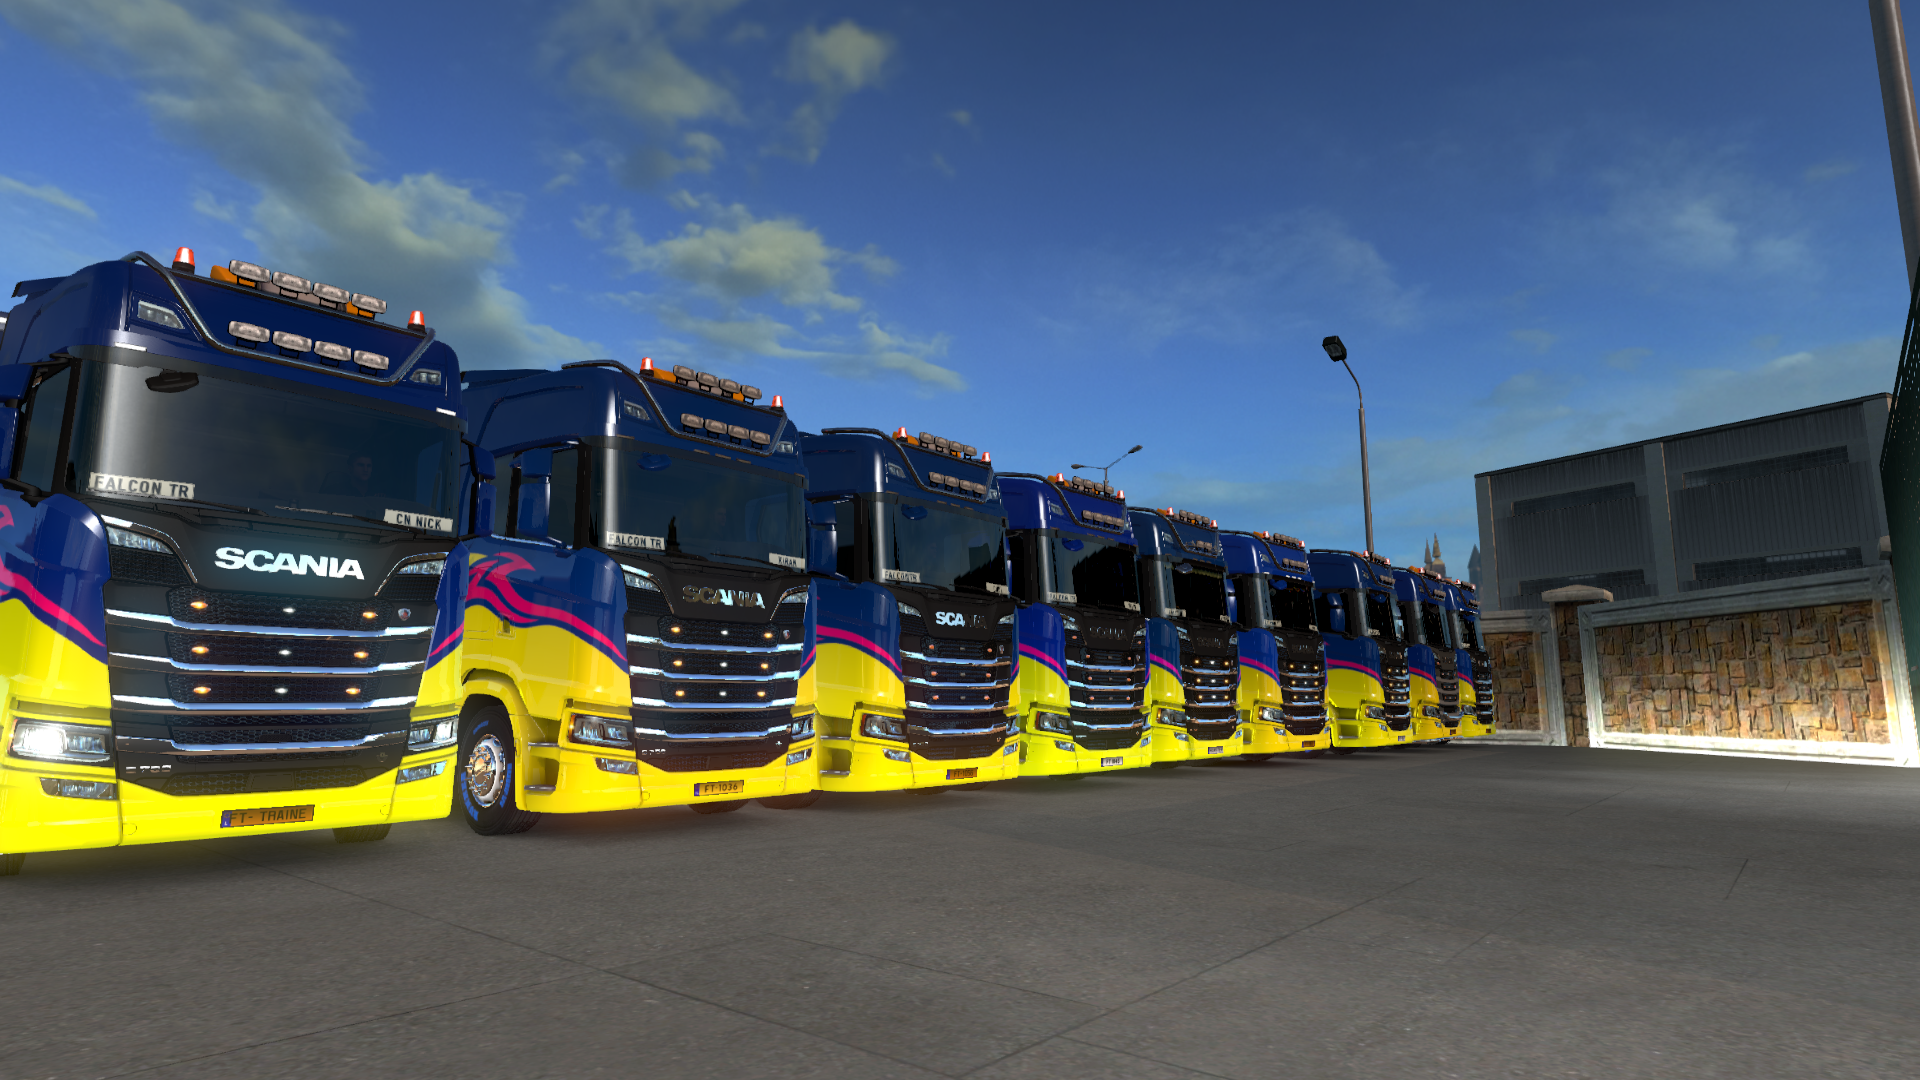 ets2_20190525_202028_00.png